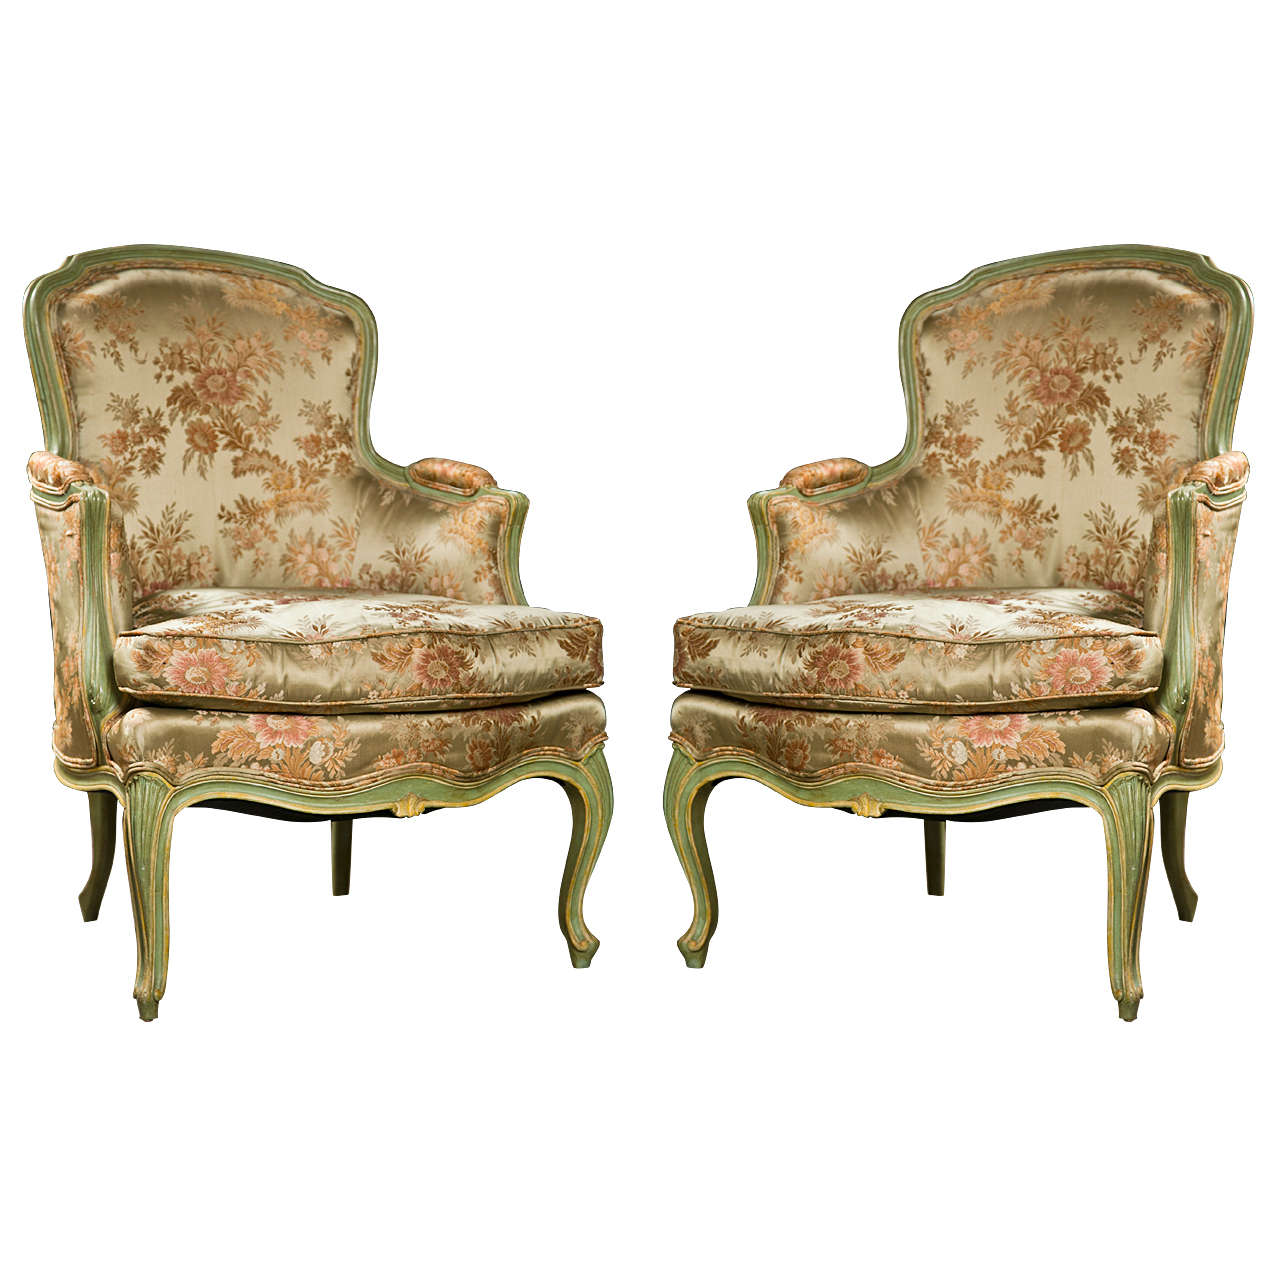 bergere chairs twin sleeper pair of french louis xvi style at 1stdibs